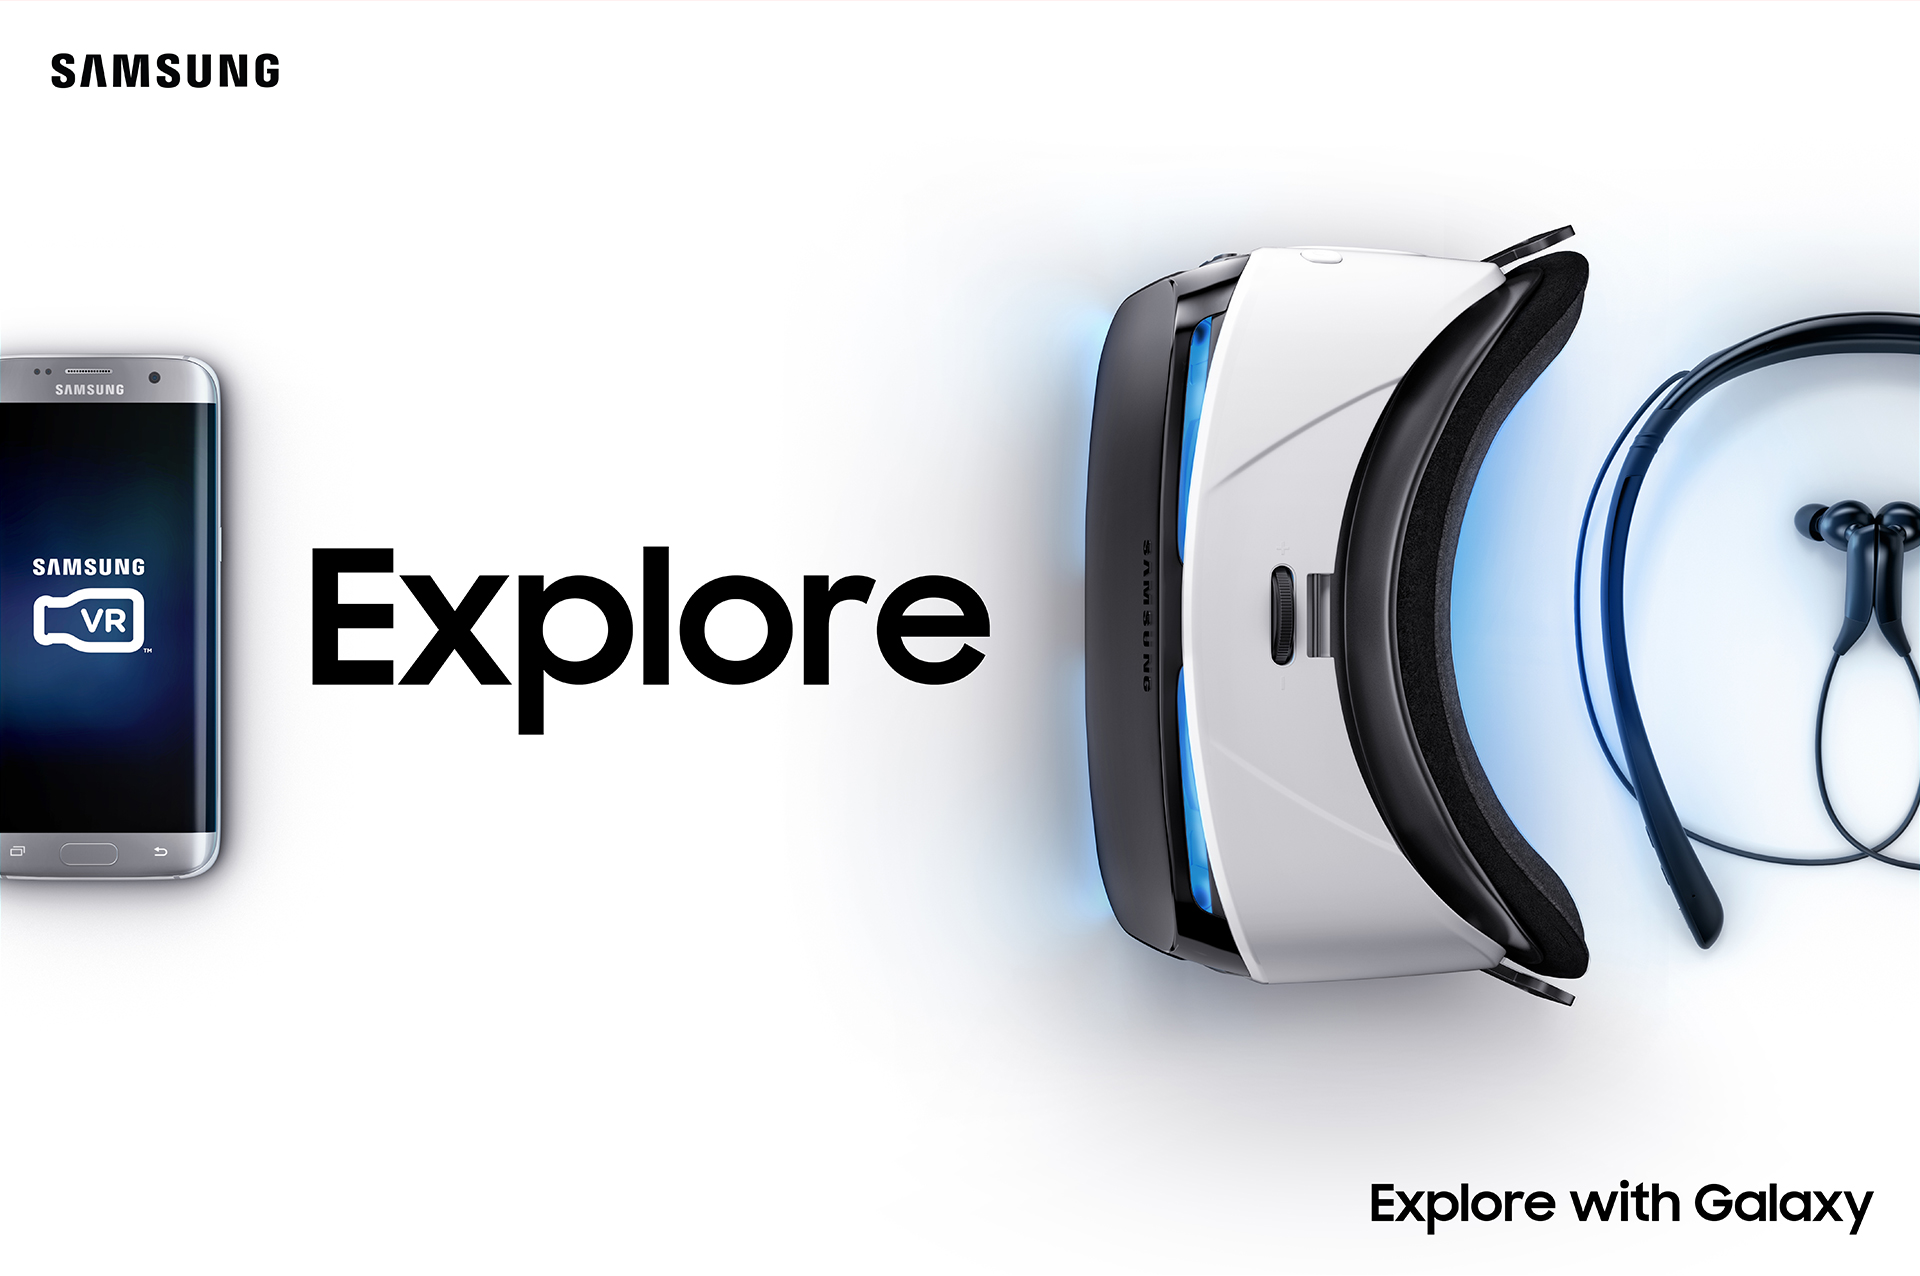 Explore with Galaxy